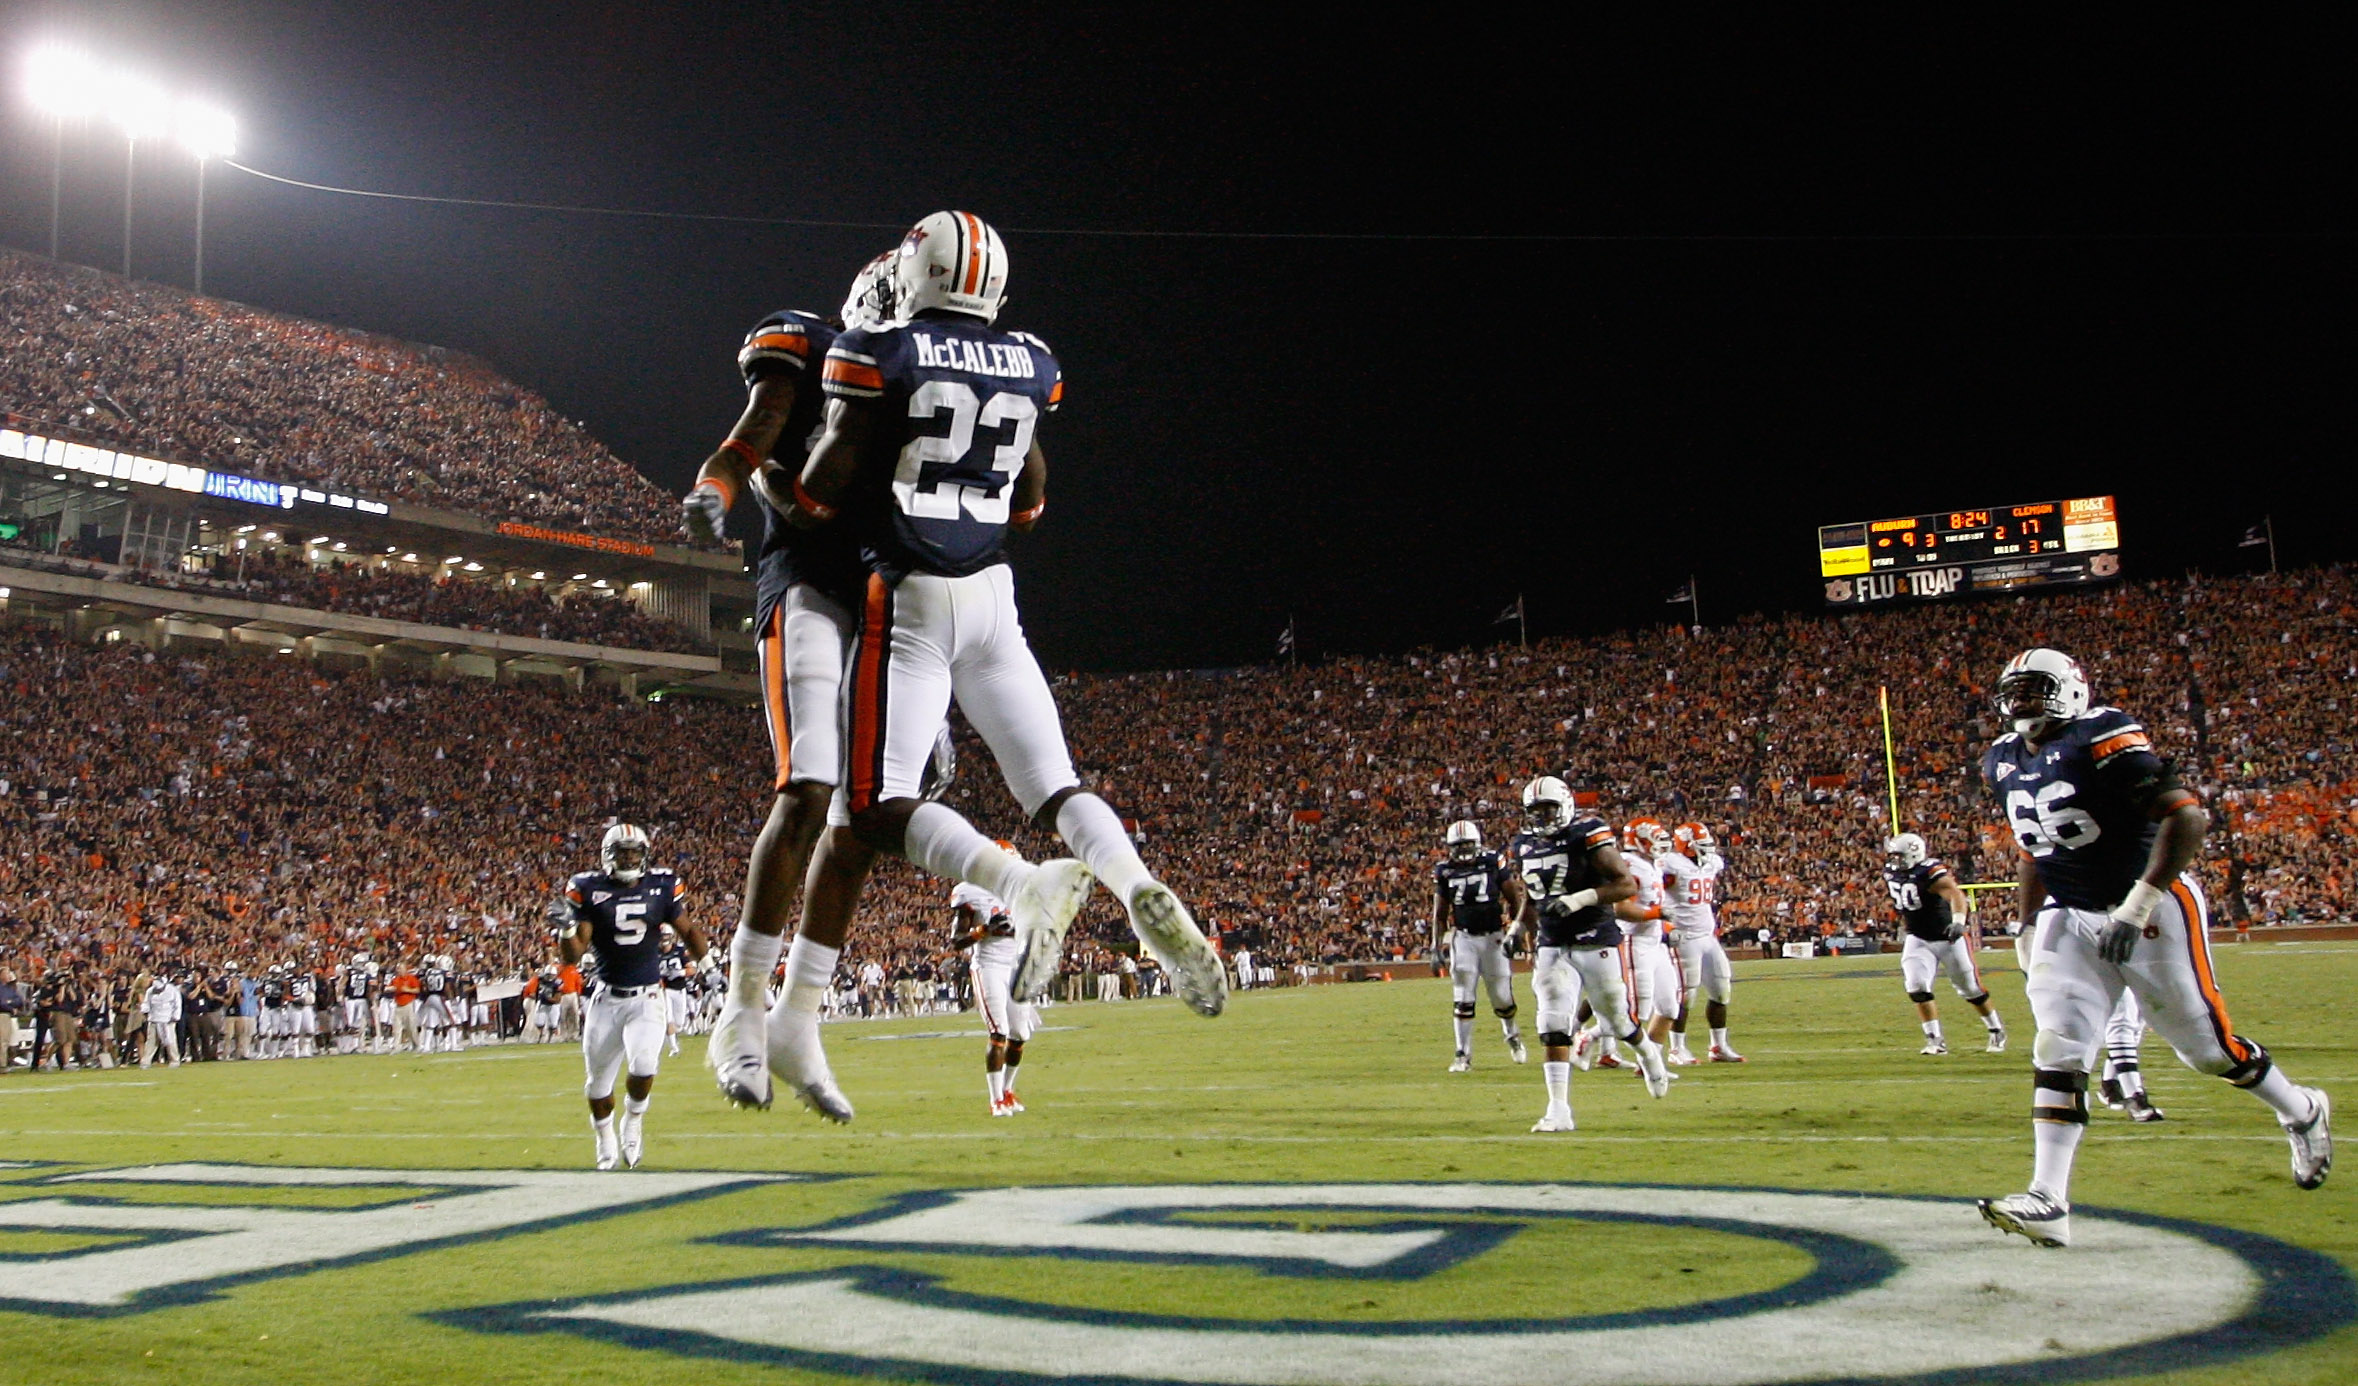 AUBURN, AL - SEPTEMBER 18:  Onterio McCalebb #23 of the Auburn Tigers celebrates his touchdown against the Clemson Tigers with Darvin Adams #89 at Jordan-Hare Stadium on September 18, 2010 in Auburn, Alabama.  (Photo by Kevin C. Cox/Getty Images)